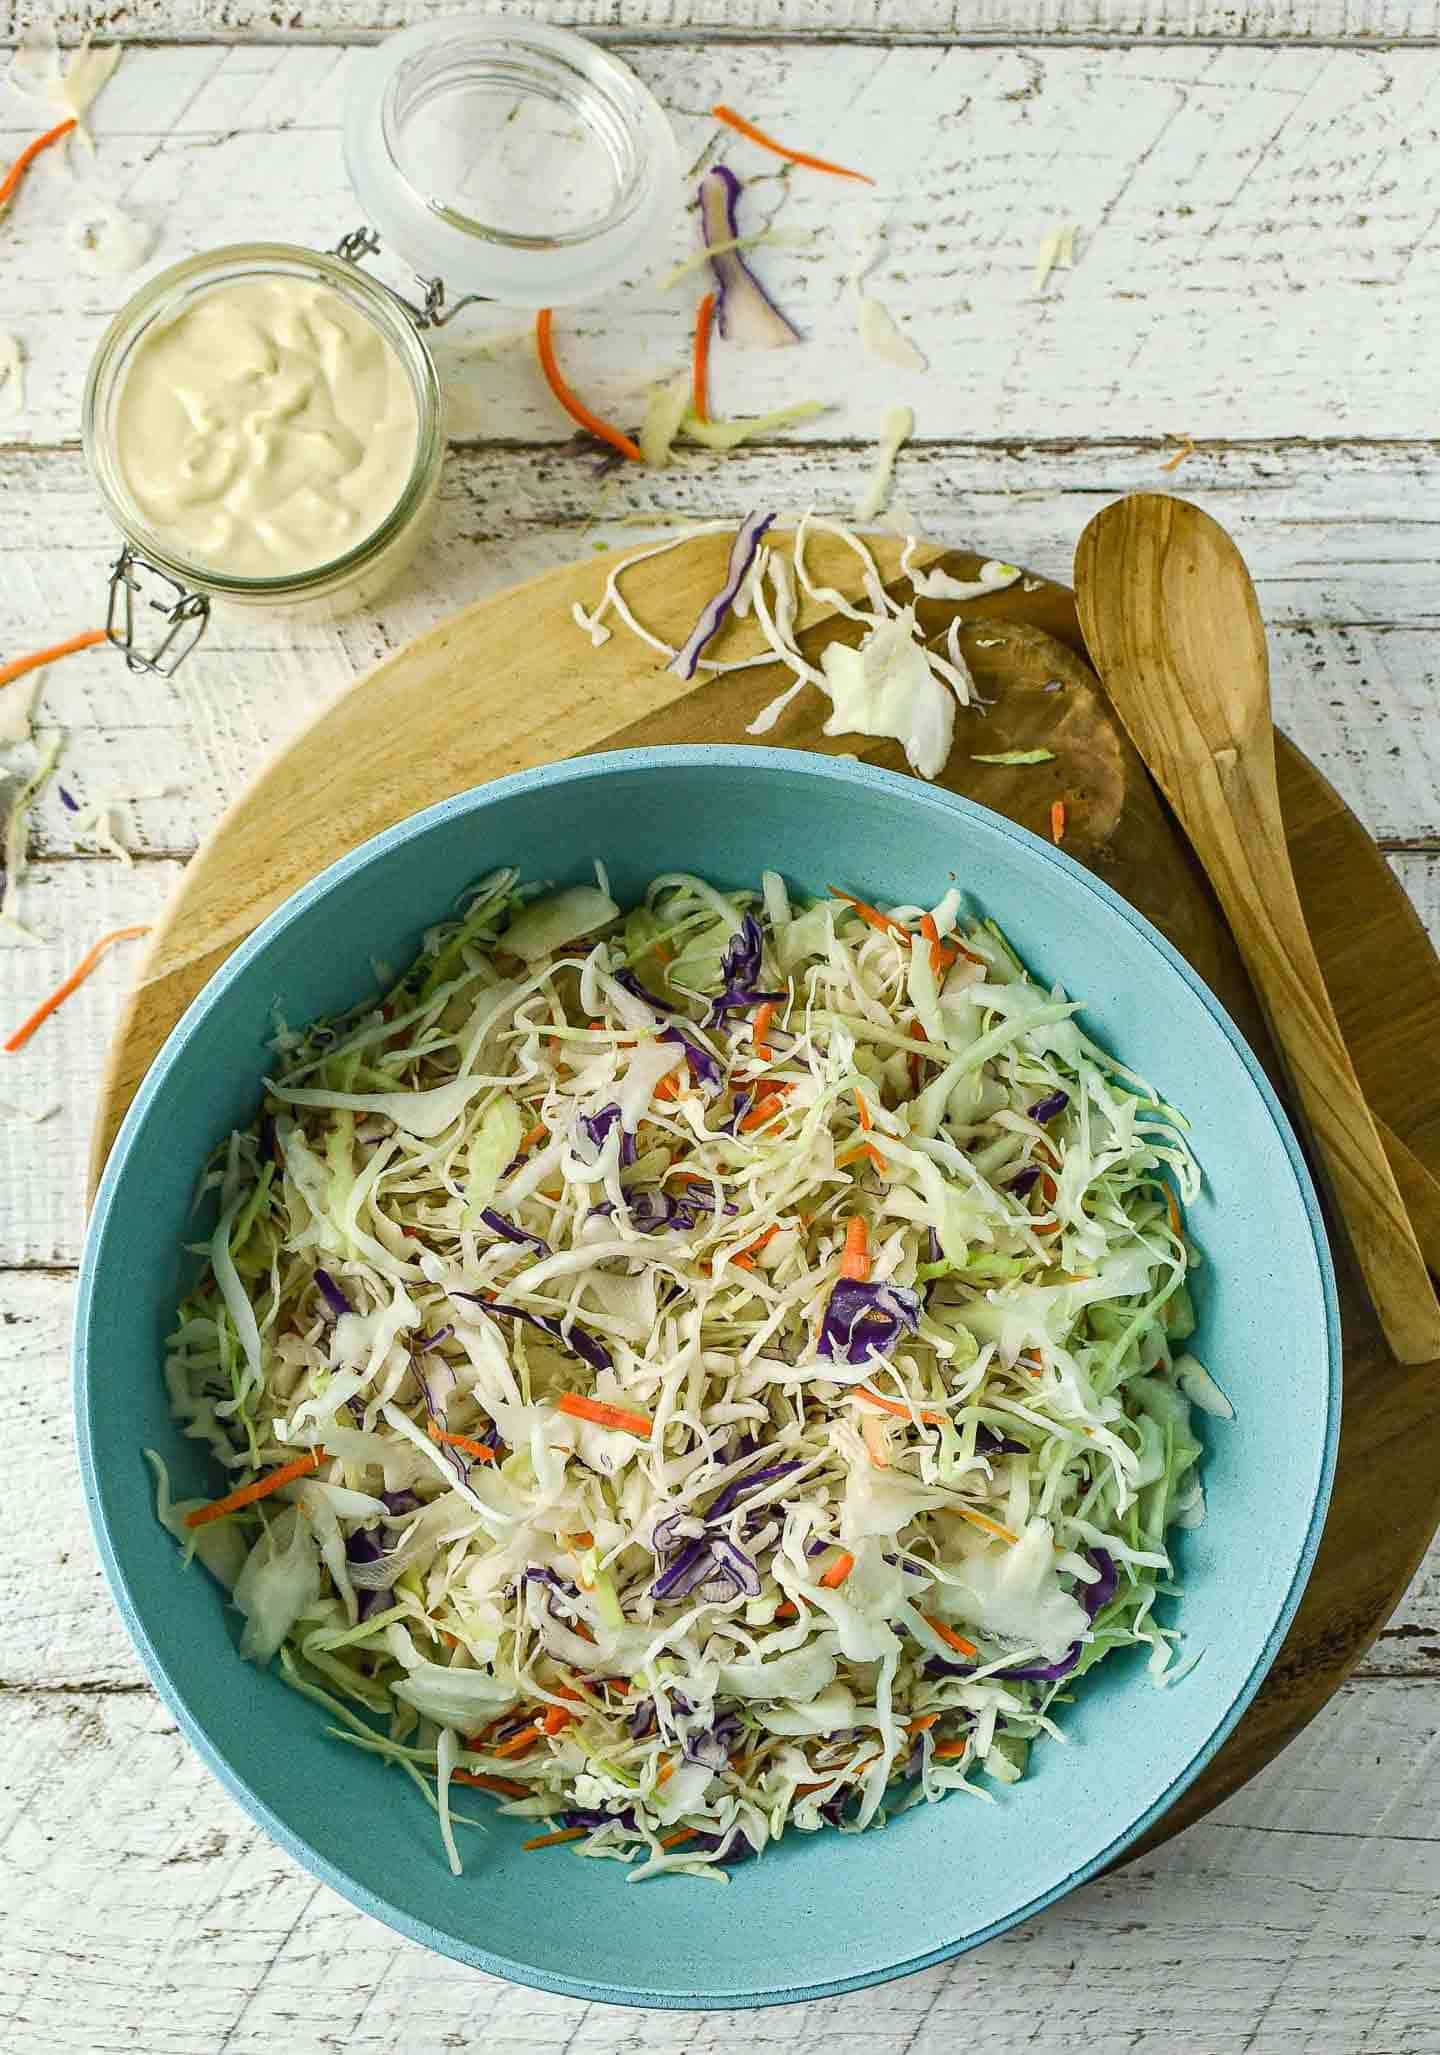 Easy Vegan Coleslaw is creamy, delicious, and so easy to make. Made in one bowl with 5 ingredients, it's perfect for BBQs, picnics, and summer potlucks! Oil-free, gluten-free, and healthy.